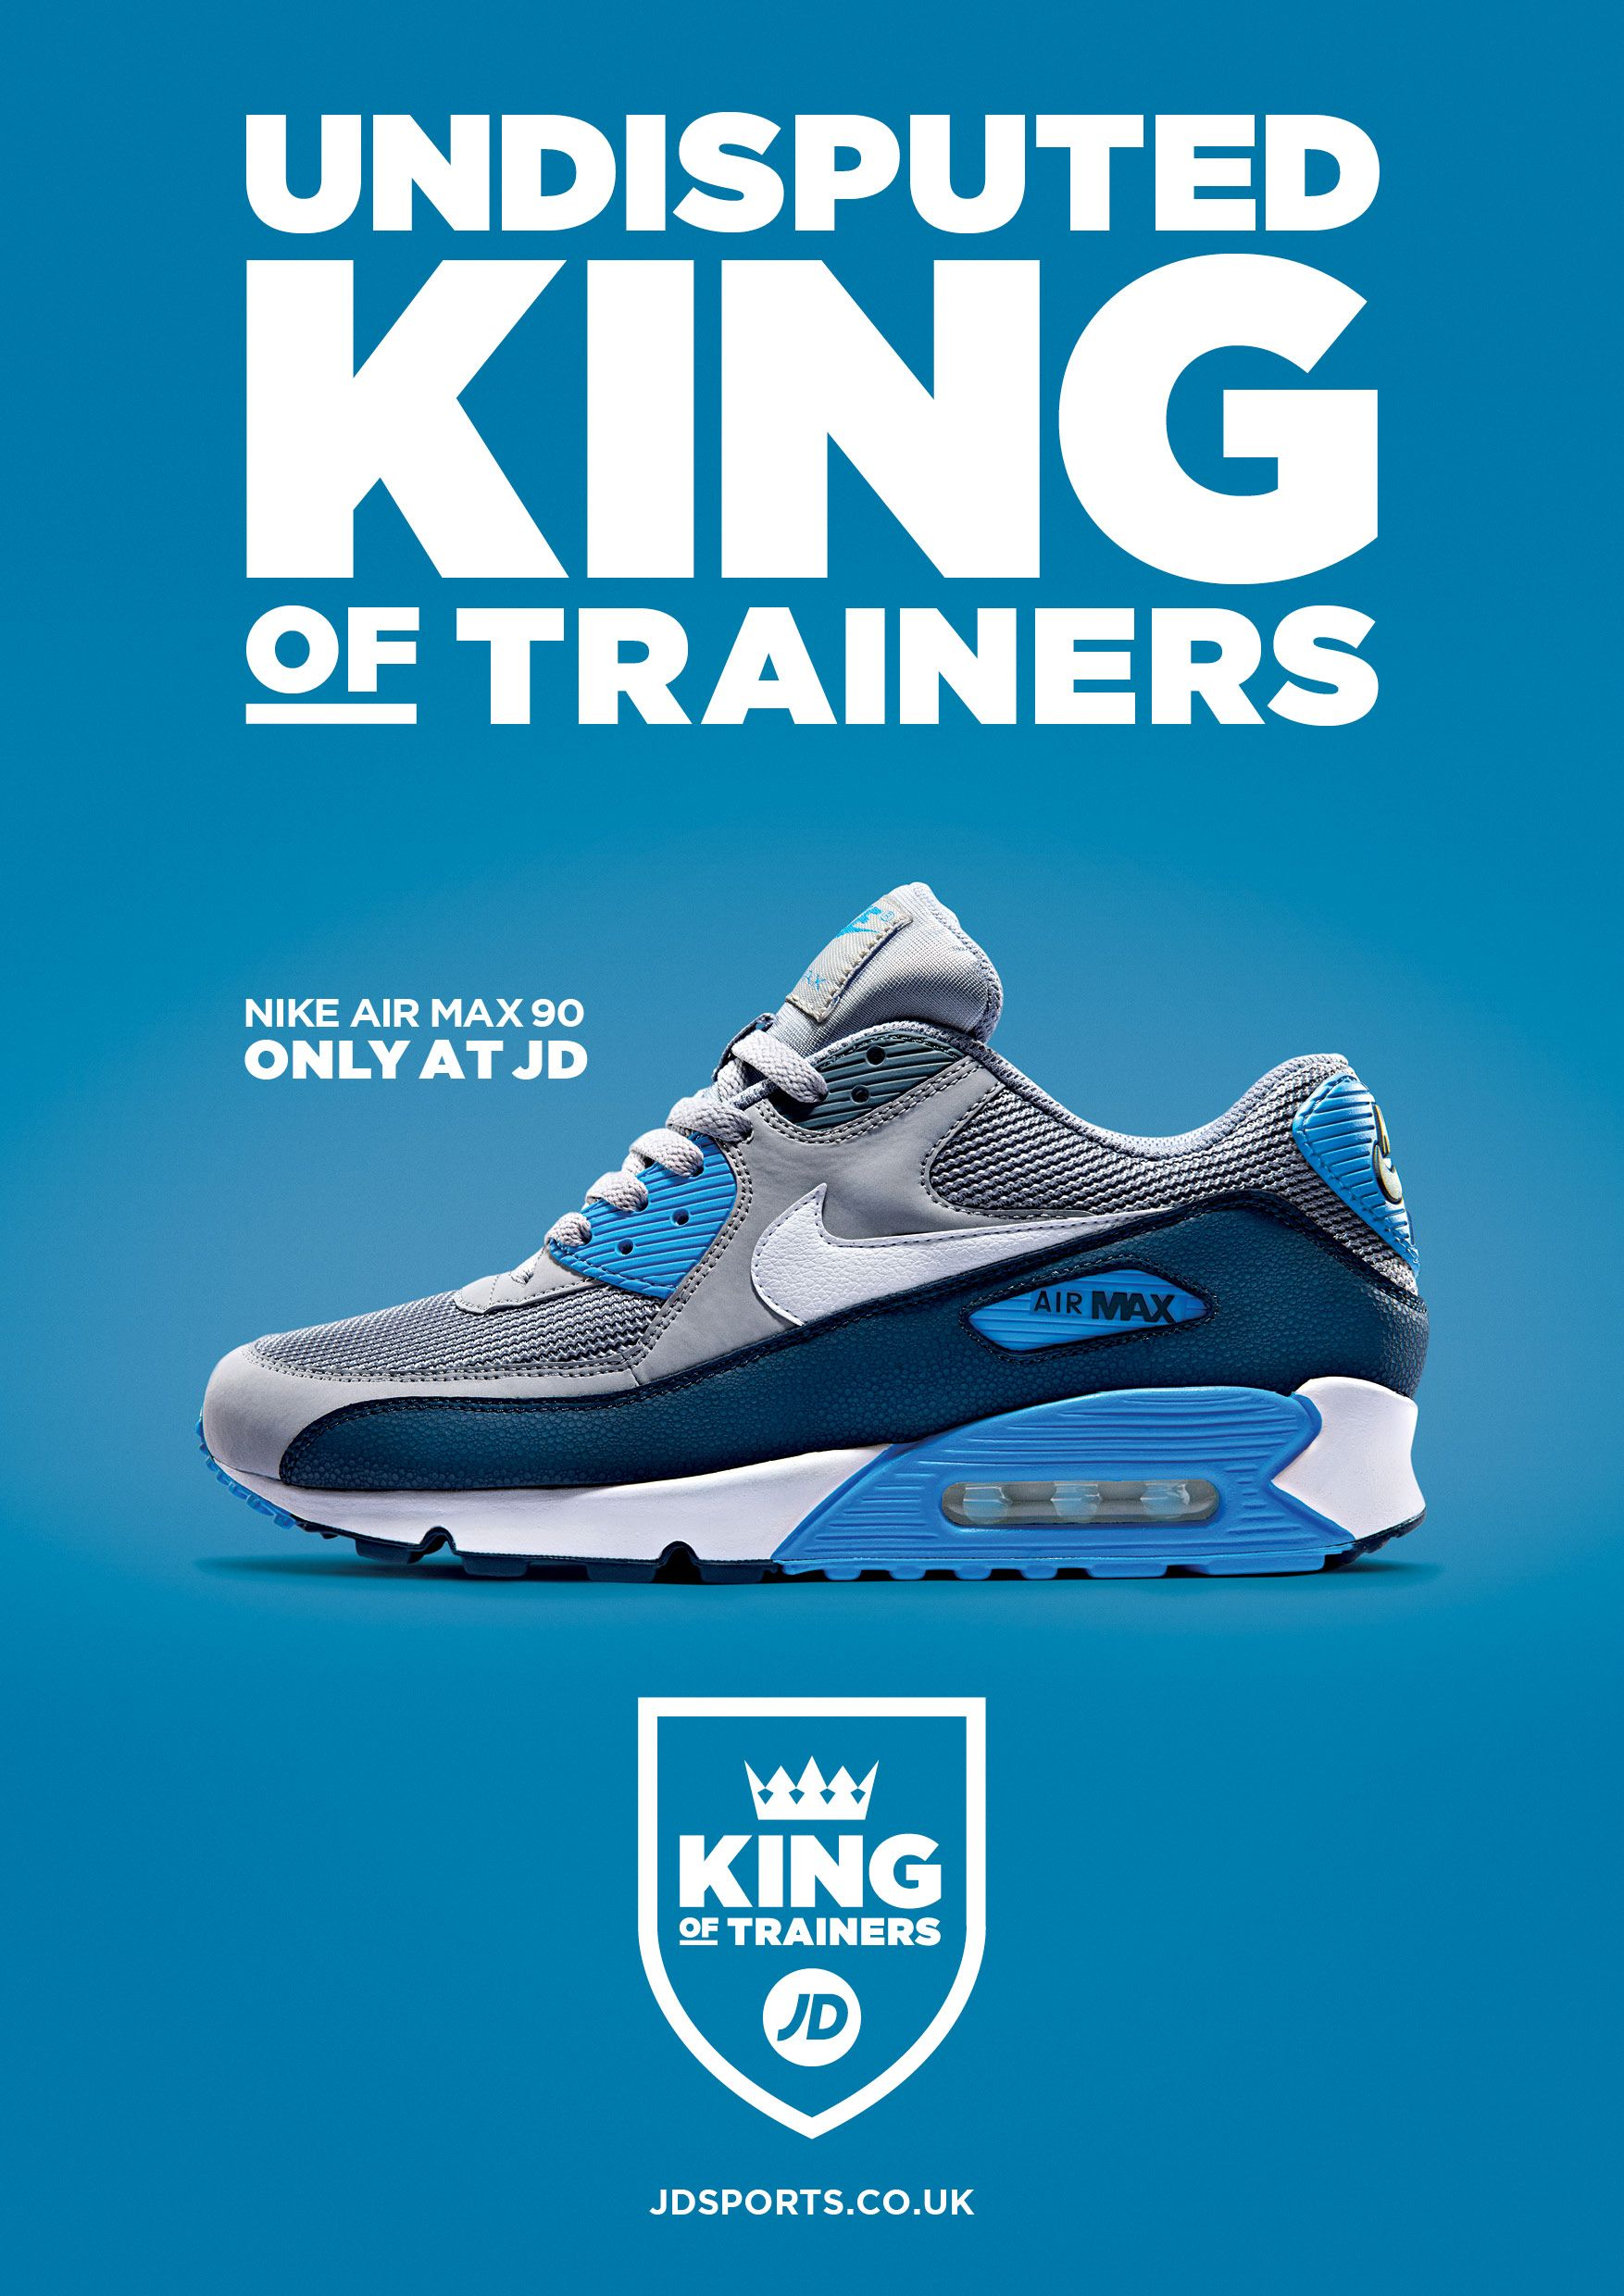 Pin on JD - King of Trainers